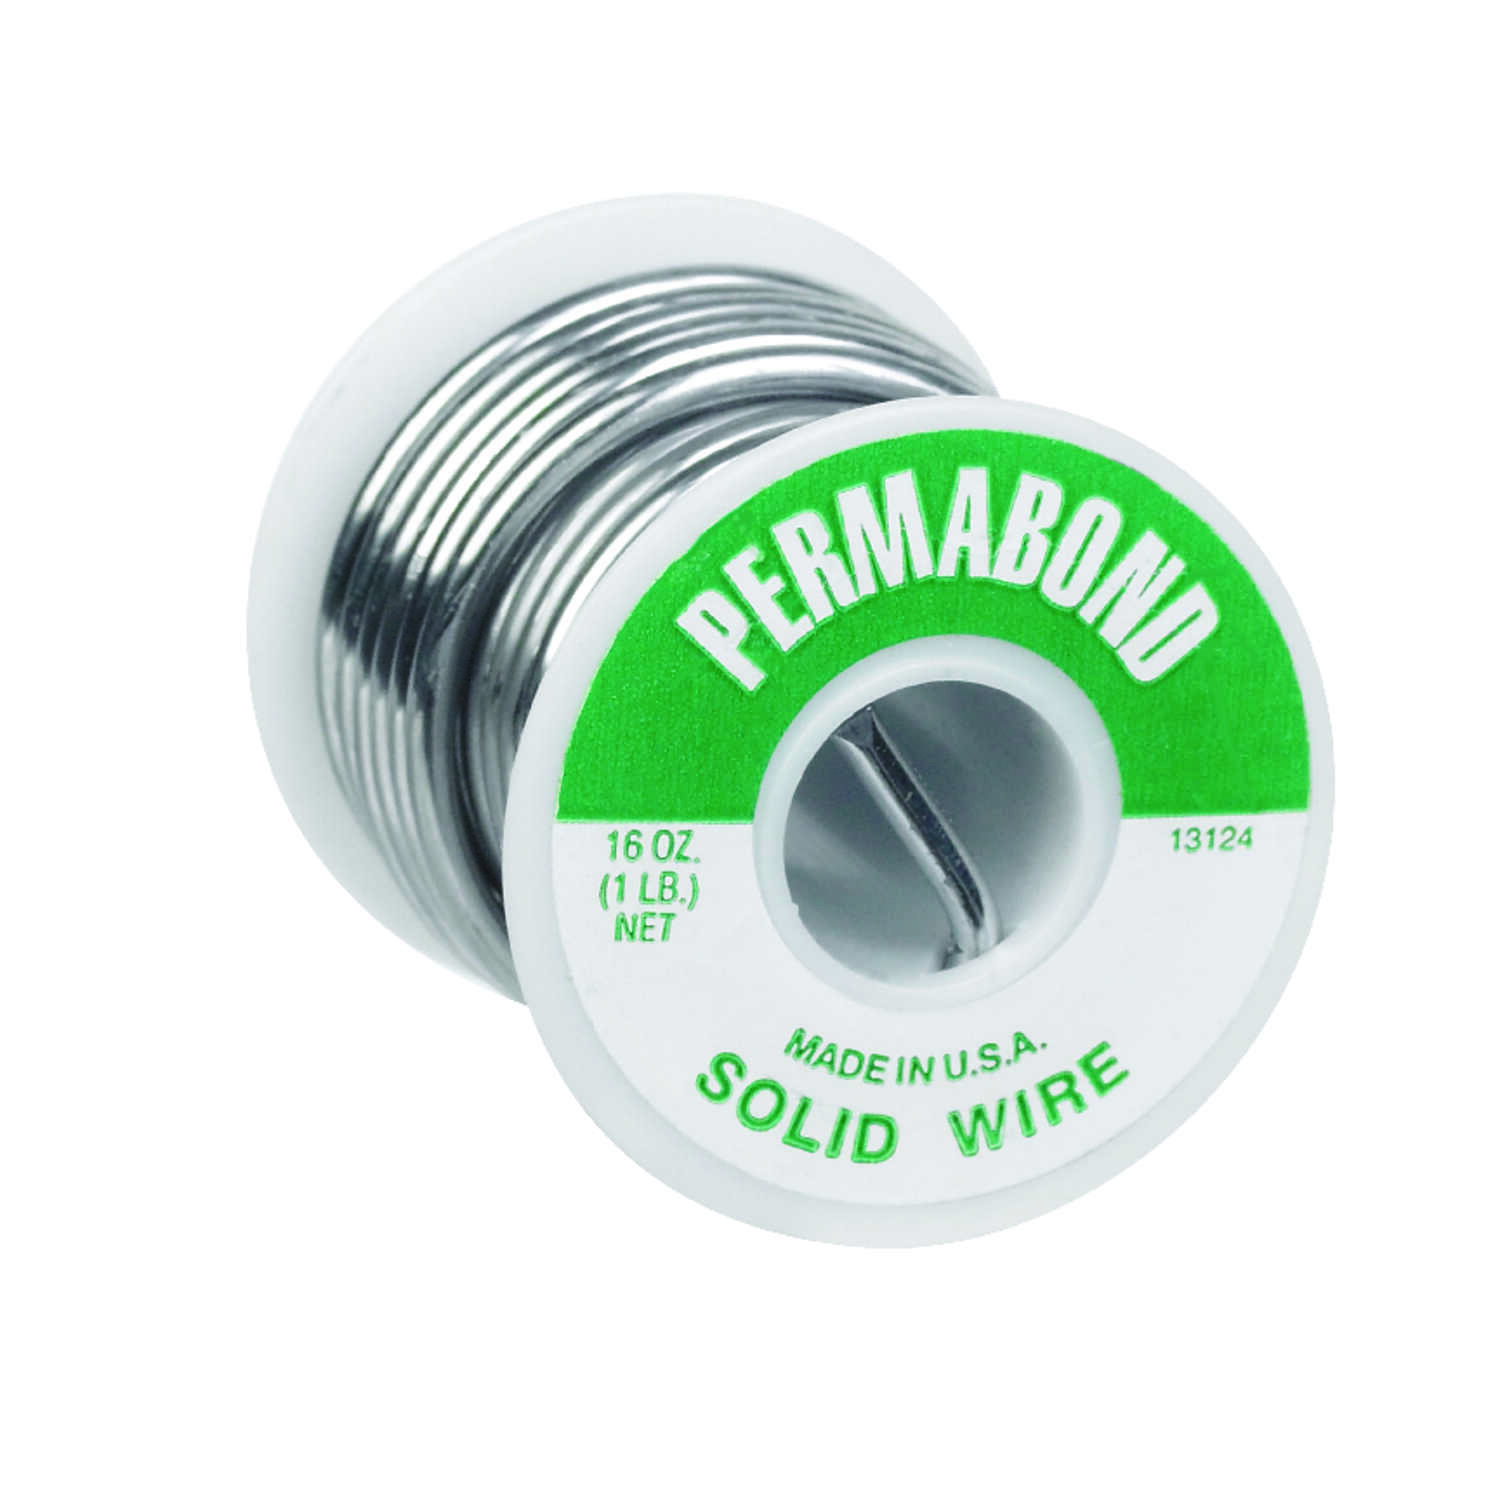 Perma Bond  16 oz. Solid Wire Solder  1/8 in. Dia. 3.3% Tin, 2.2% Antimony, 94.5% Lead